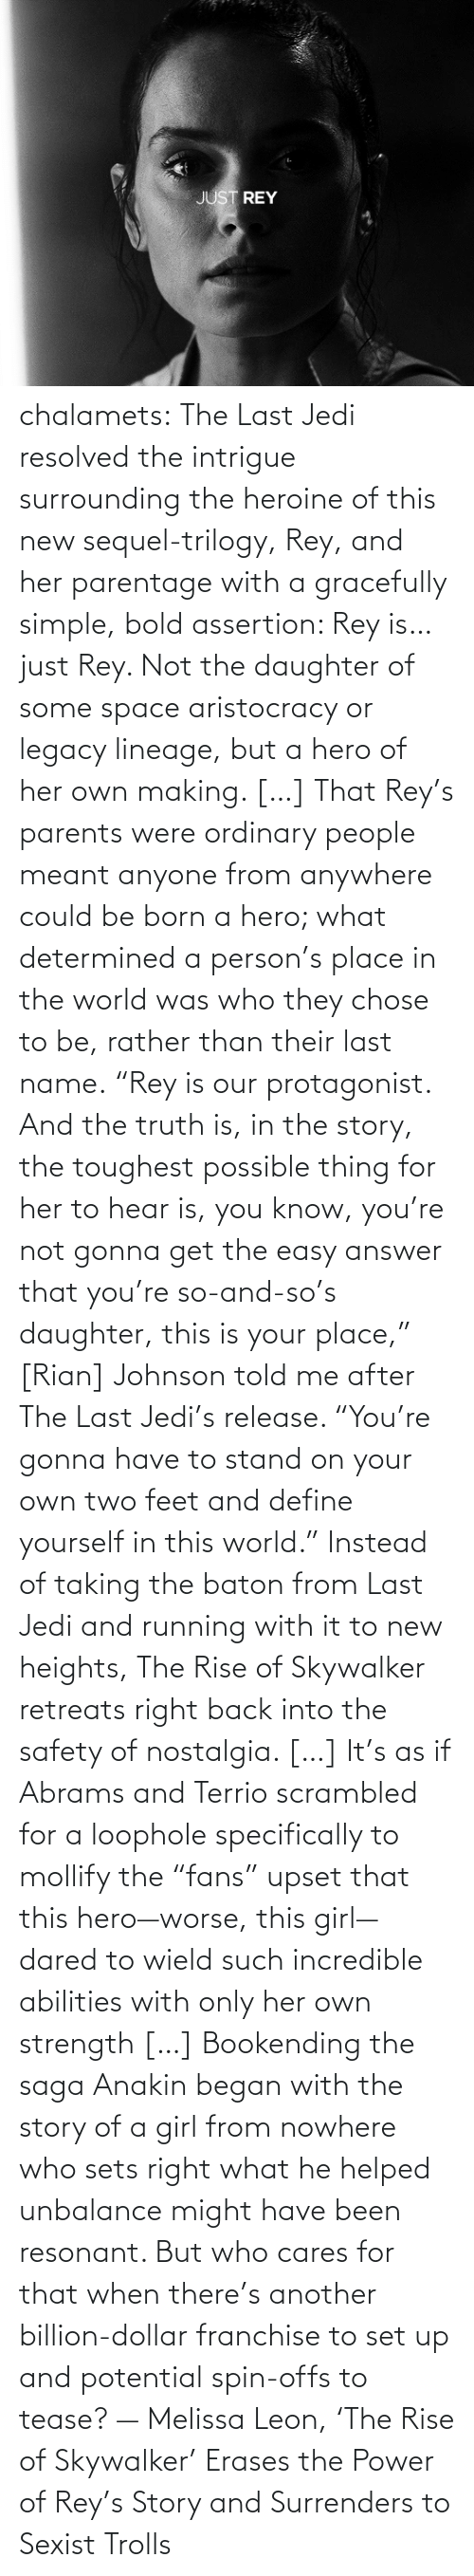 "Heights: chalamets:  The Last Jedi resolved the intrigue surrounding the heroine of this new sequel-trilogy, Rey, and her parentage with a gracefully simple, bold assertion: Rey is… just Rey. Not the daughter of some space aristocracy or legacy lineage, but a hero of her own making. […] That Rey's parents were ordinary people meant anyone from anywhere could be born a hero; what determined a person's place in the world was who they chose to be, rather than their last name. ""Rey is our protagonist. And the truth is, in the story, the toughest possible thing for her to hear is, you know, you're not gonna get the easy answer that you're so-and-so's daughter, this is your place,"" [Rian] Johnson told me after The Last Jedi's release. ""You're gonna have to stand on your own two feet and define yourself in this world."" Instead of taking the baton from Last Jedi and running with it to new heights, The Rise of Skywalker retreats right back into the safety of nostalgia. […] It's as if Abrams and Terrio scrambled for a loophole specifically to mollify the ""fans"" upset that this hero—worse, this girl—dared to wield such incredible abilities with only her own strength […] Bookending the saga Anakin began with the story of a girl from nowhere who sets right what he helped unbalance might have been resonant. But who cares for that when there's another billion-dollar franchise to set up and potential spin-offs to tease? — Melissa Leon, 'The Rise of Skywalker' Erases the Power of Rey's Story and Surrenders to Sexist Trolls"